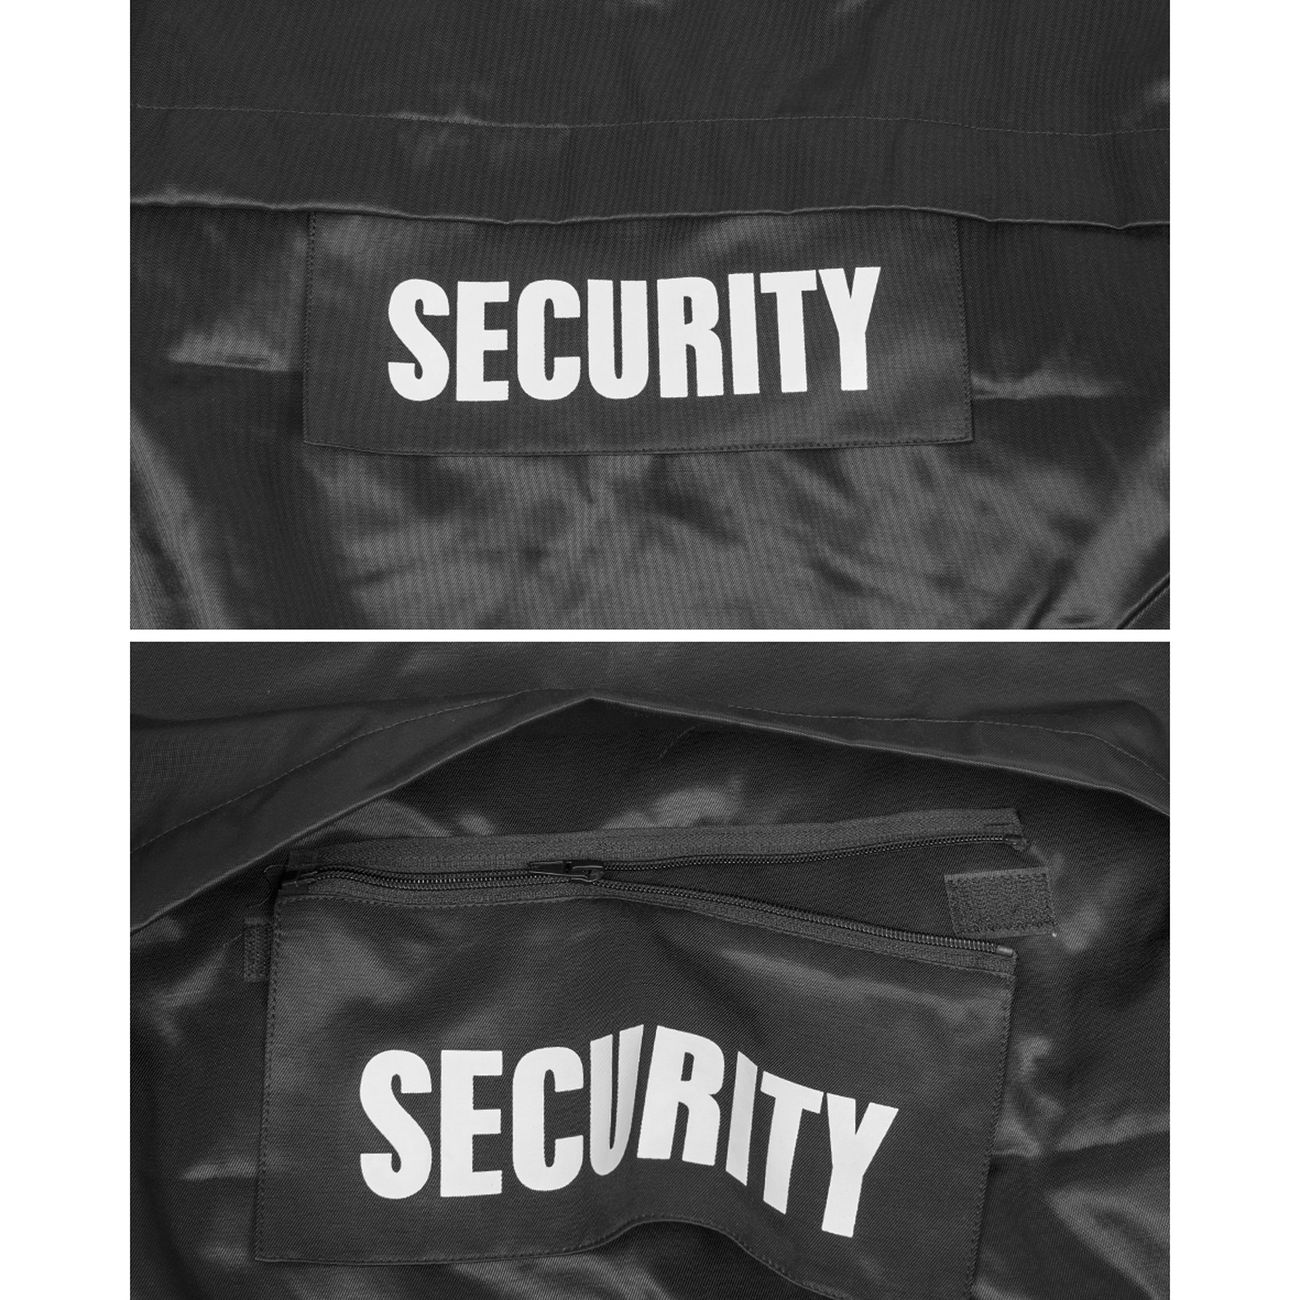 Rückenpatch Security mit Zipper 1